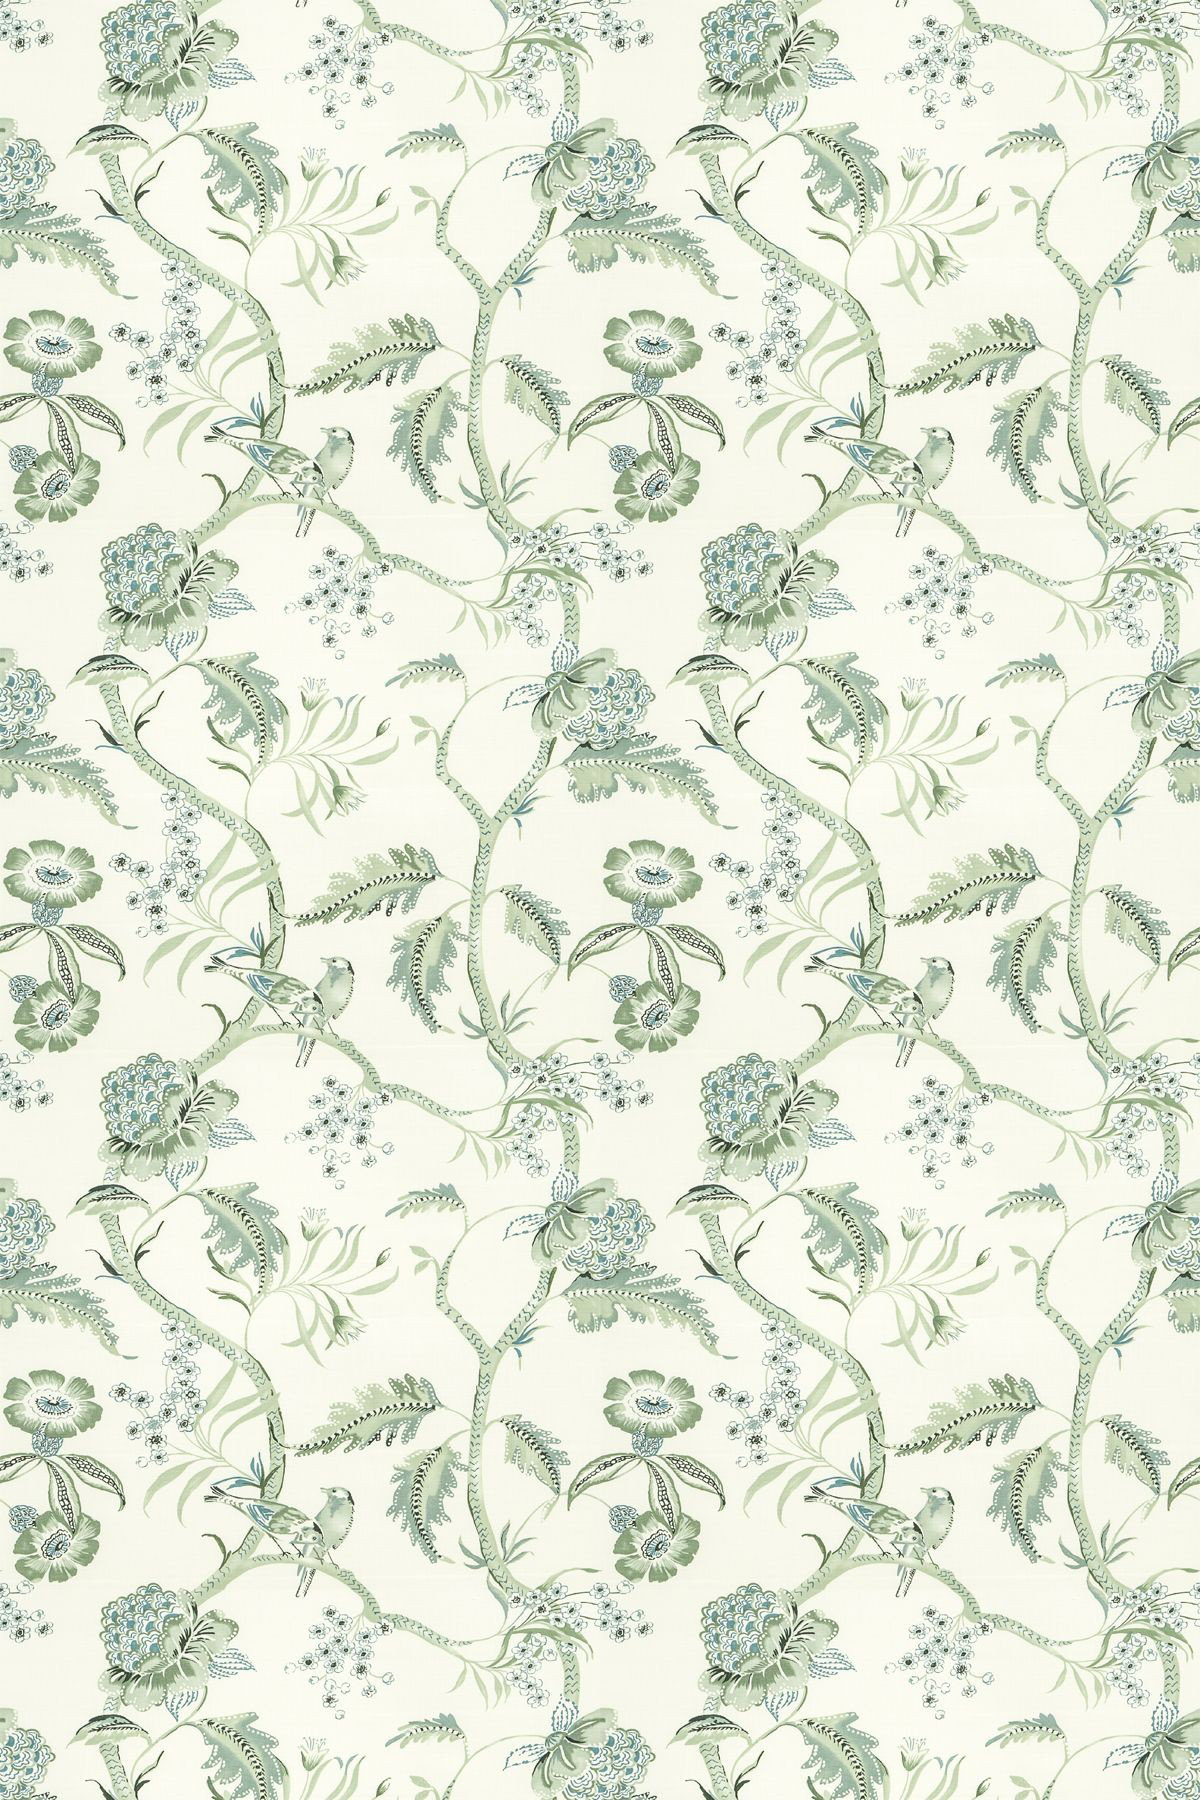 Image of Blendworth Fabric Birdsong, Birdsong/004